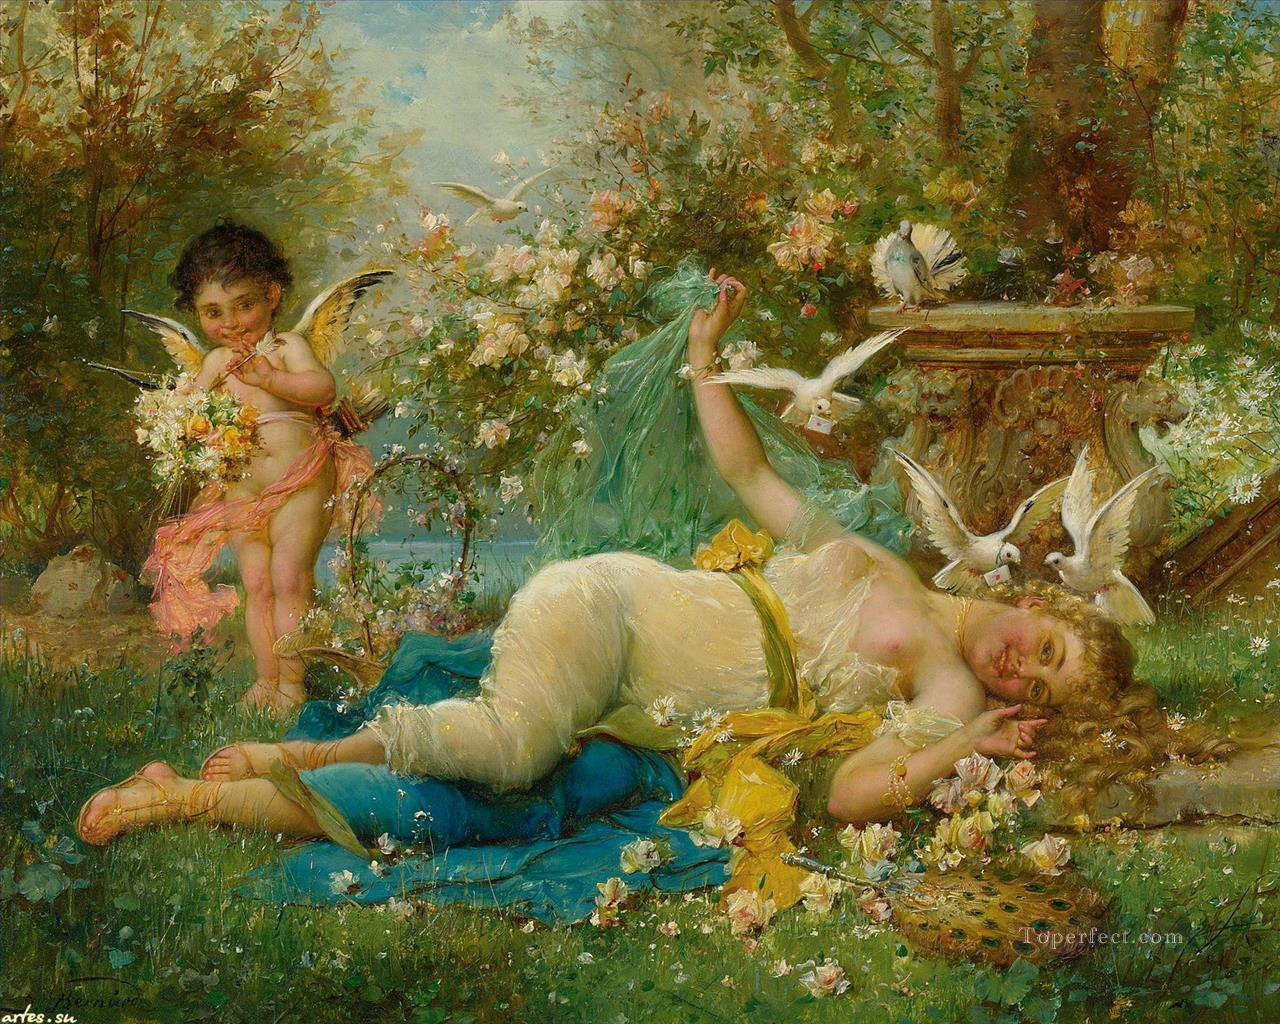 7 floral angel and nude Hans Zatzka